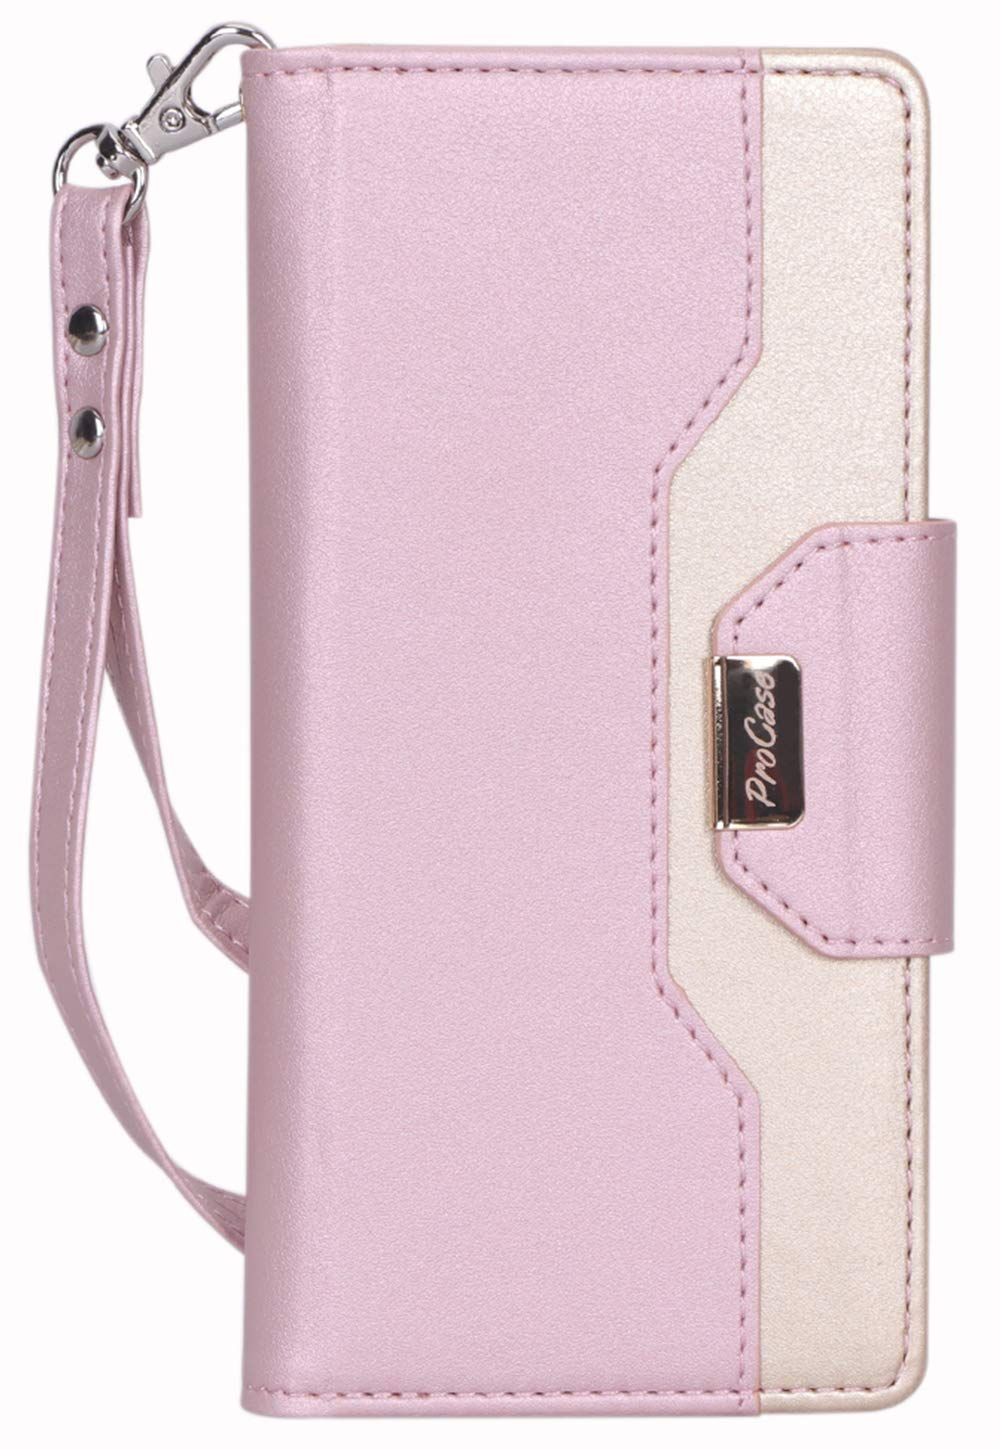 ProCase Galaxy Note 10+ Plus/5G Wallet Case, Flip Fold Kickstand Case with Card Holders Mirror, Folding Stand Protective Book Case Cover for Samsung Galaxy Note 10+ Plus/5G (2019 Release) -Pink by ProCase